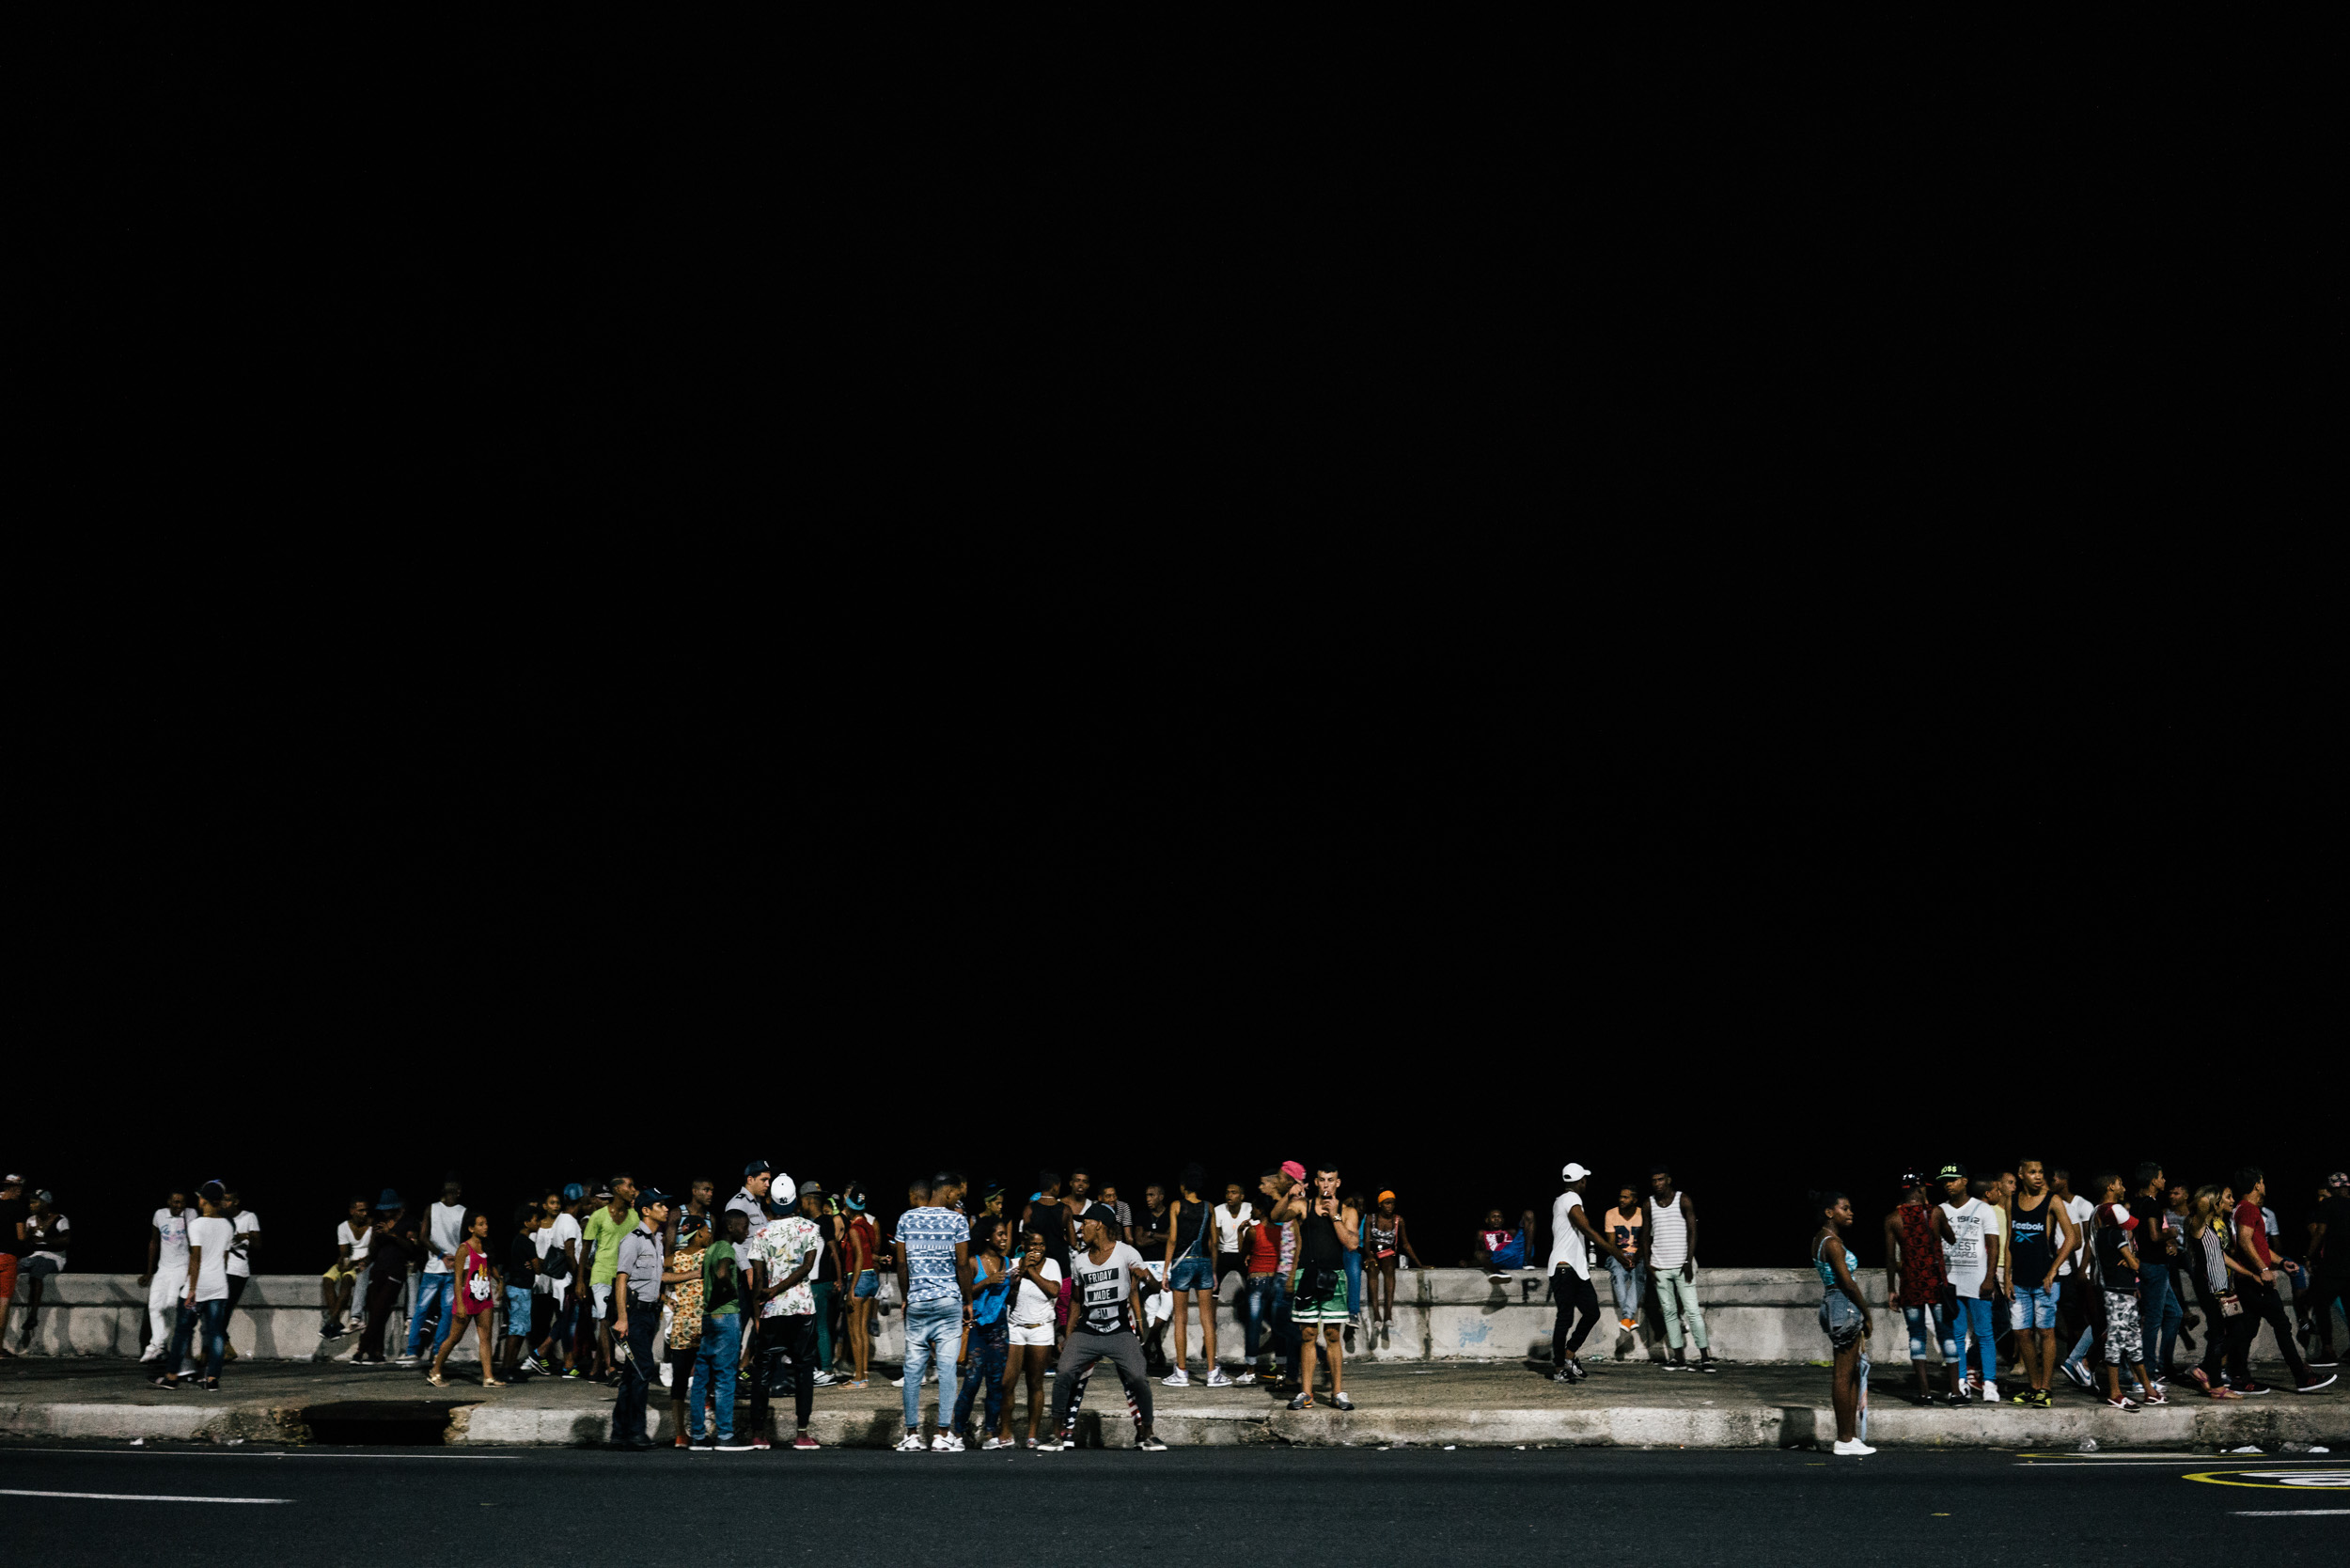 crowd partying at night along the Malecón in Havana